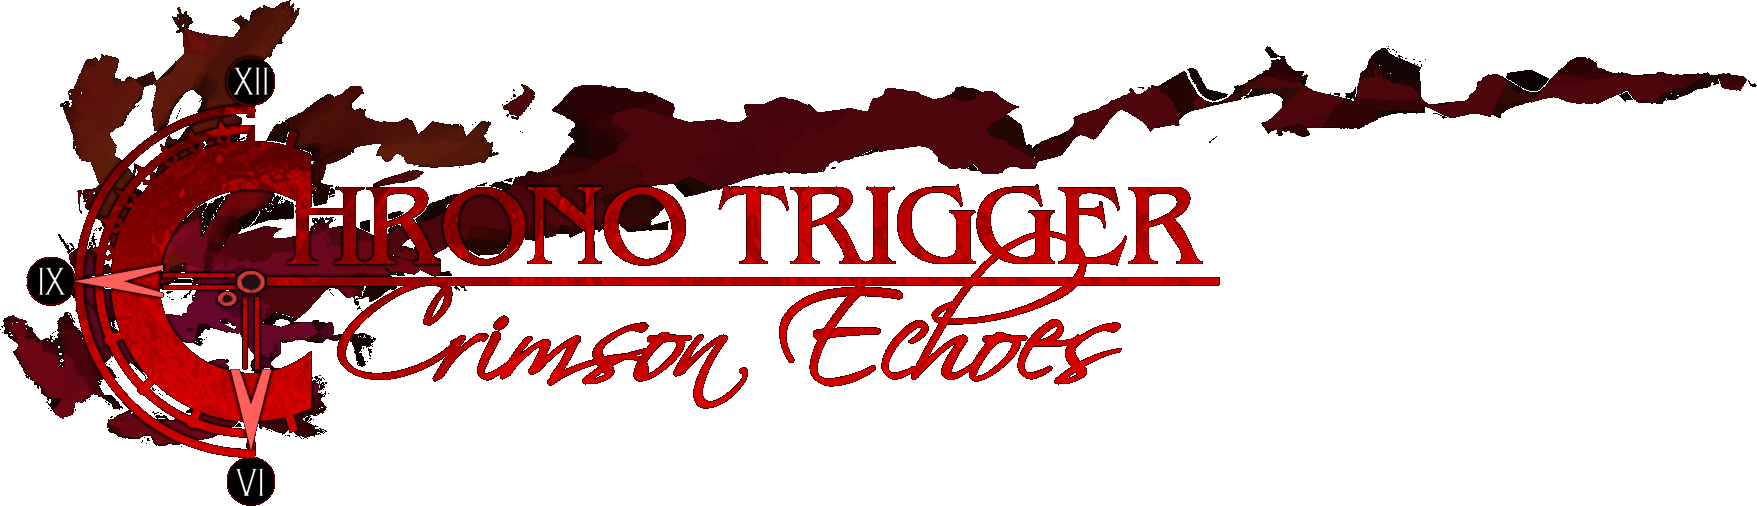 Rom chrono trigger crimson echoes patch